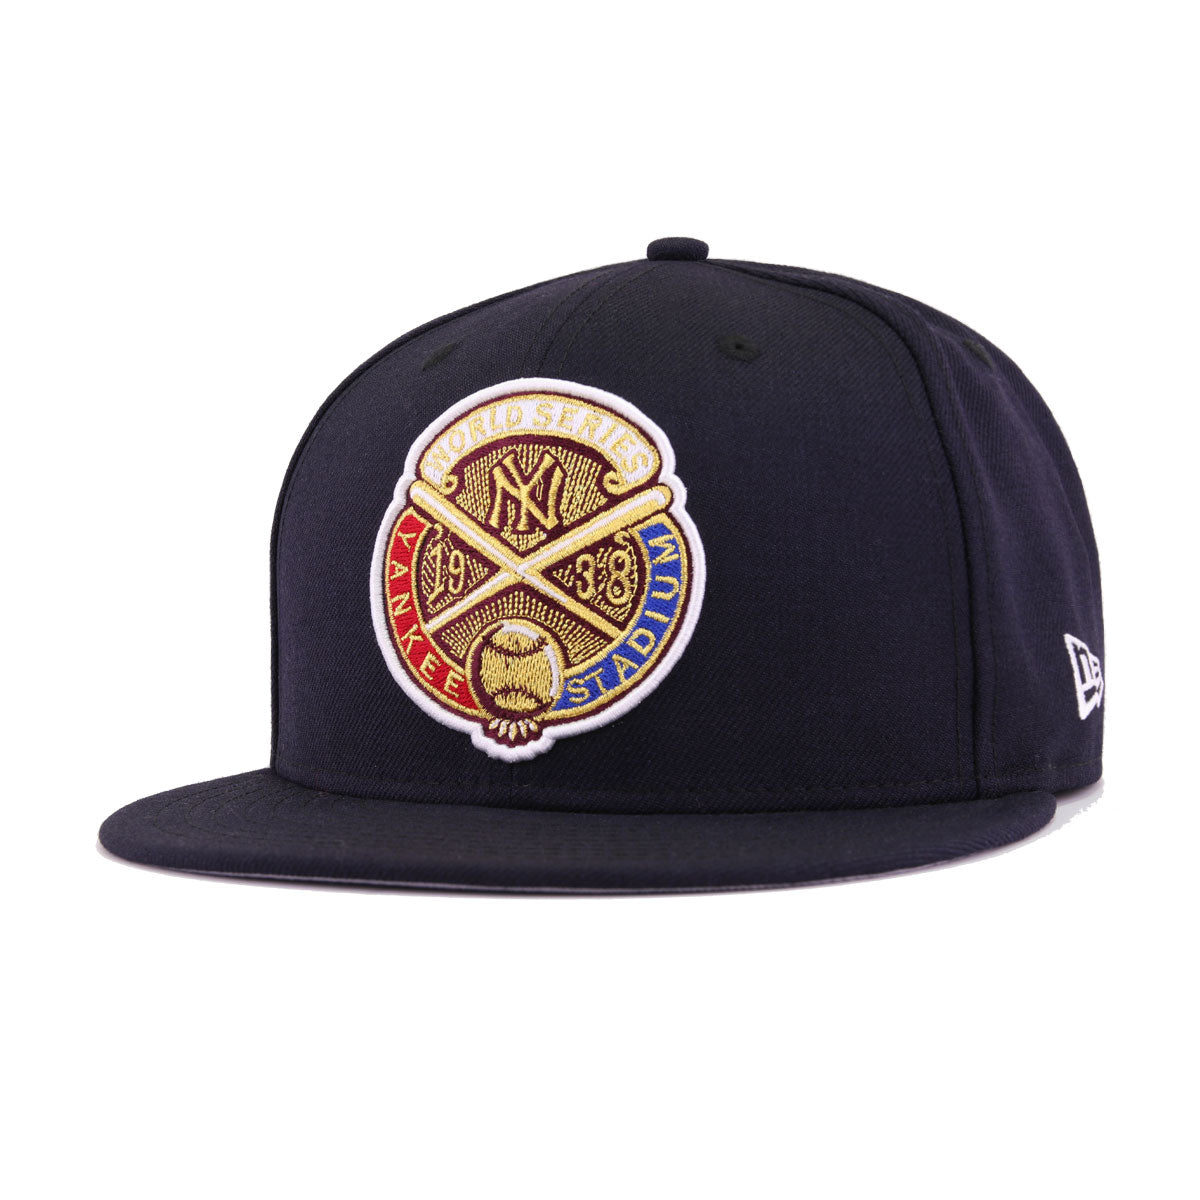 New York Yankees Navy 1938 World Series Cooperstown New Era 9Fifty Snapback